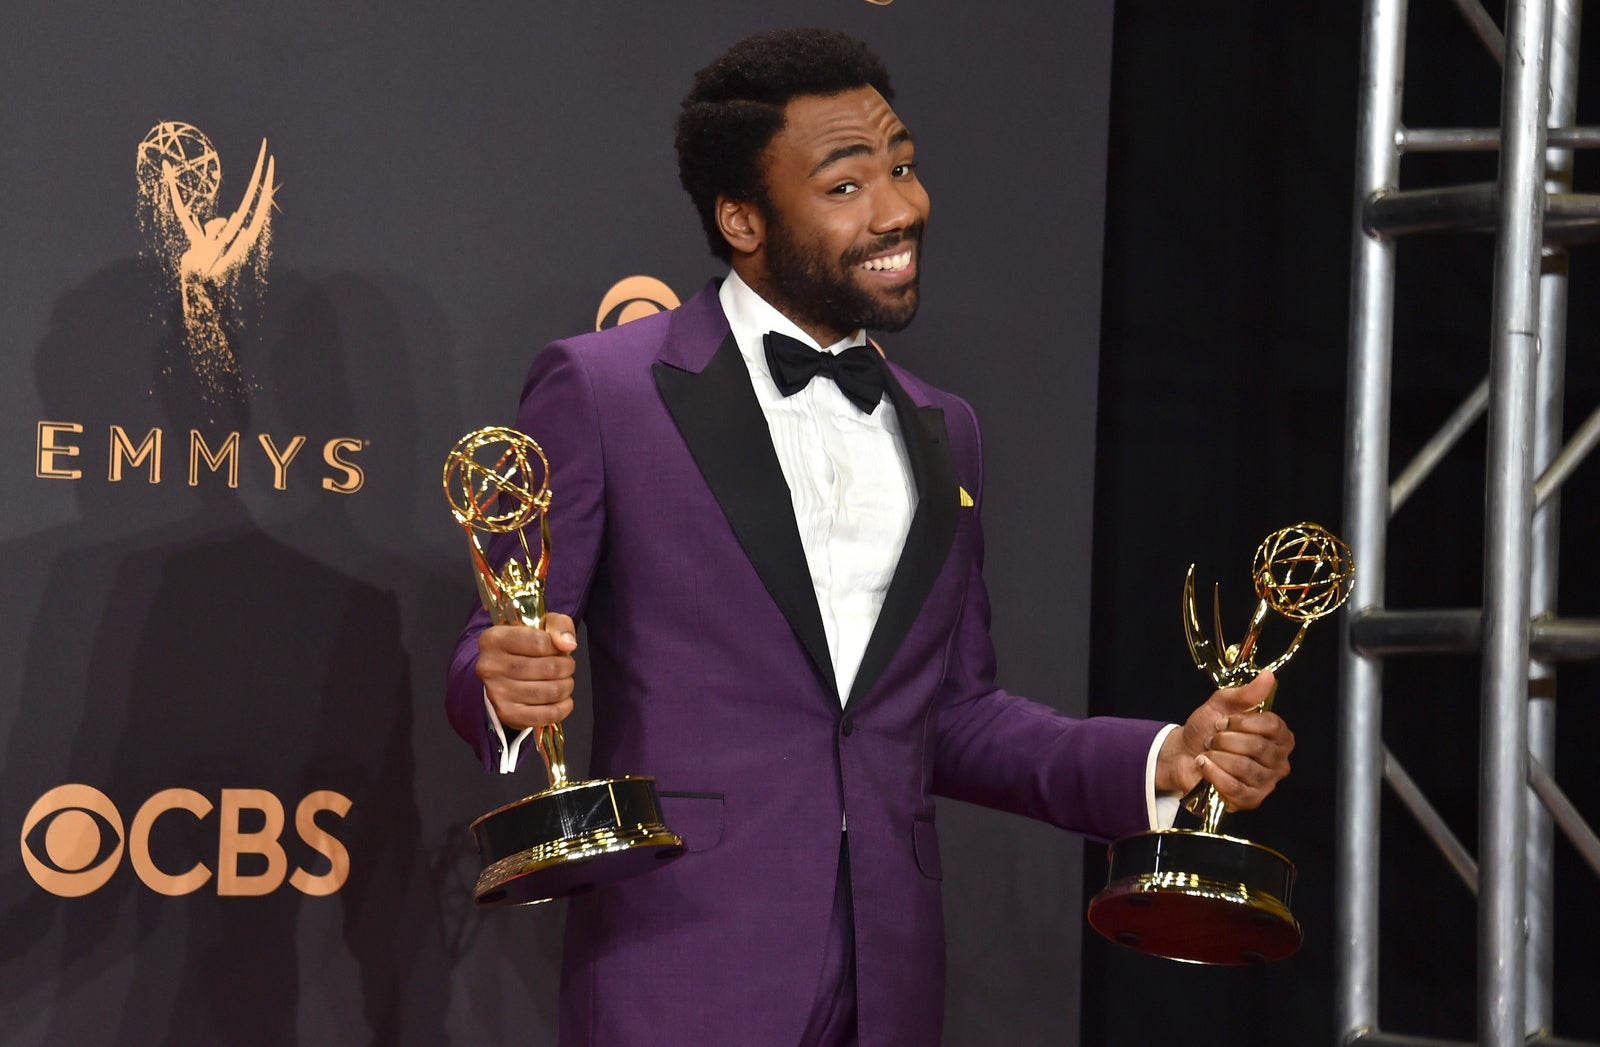 Donald Glover had a big night at the 2017 Emmy Awards on Sunday. He took home two major honors for his show Atlanta: Outstanding Directing for a Comedy Series and Outstanding Lead Actor in a Comedy Series.